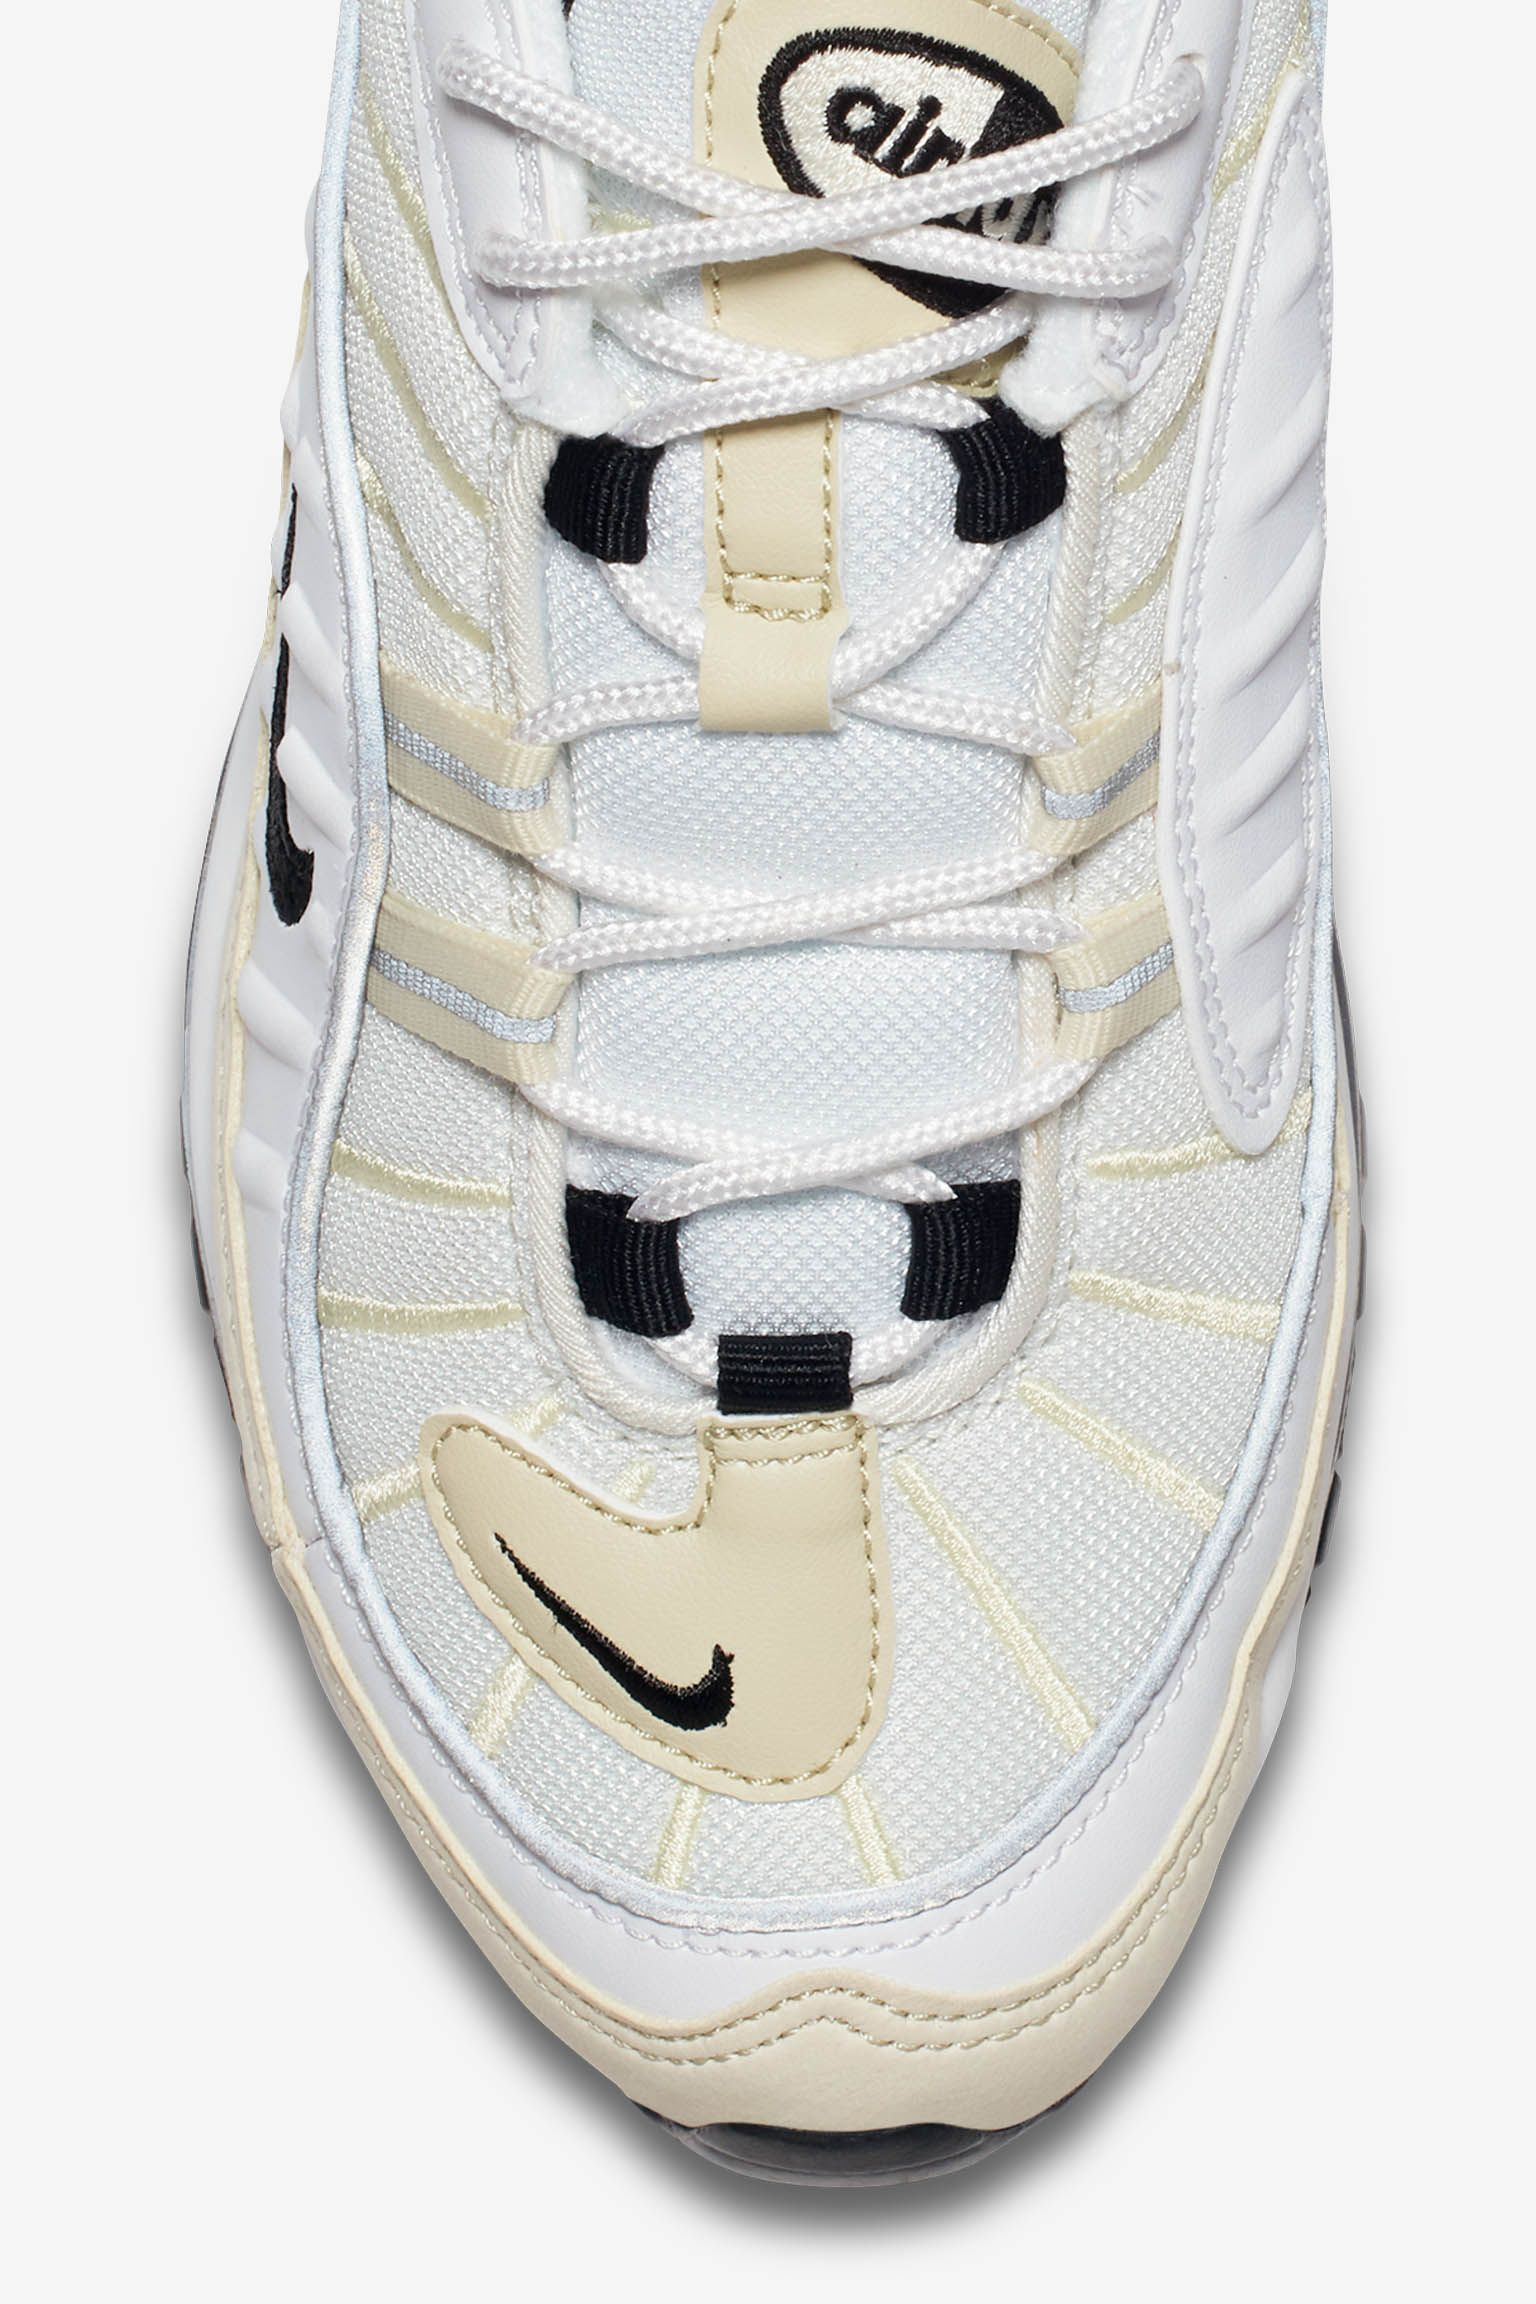 Nike Women's Air Max 98 'White & Black & Fossil' Release Date ...